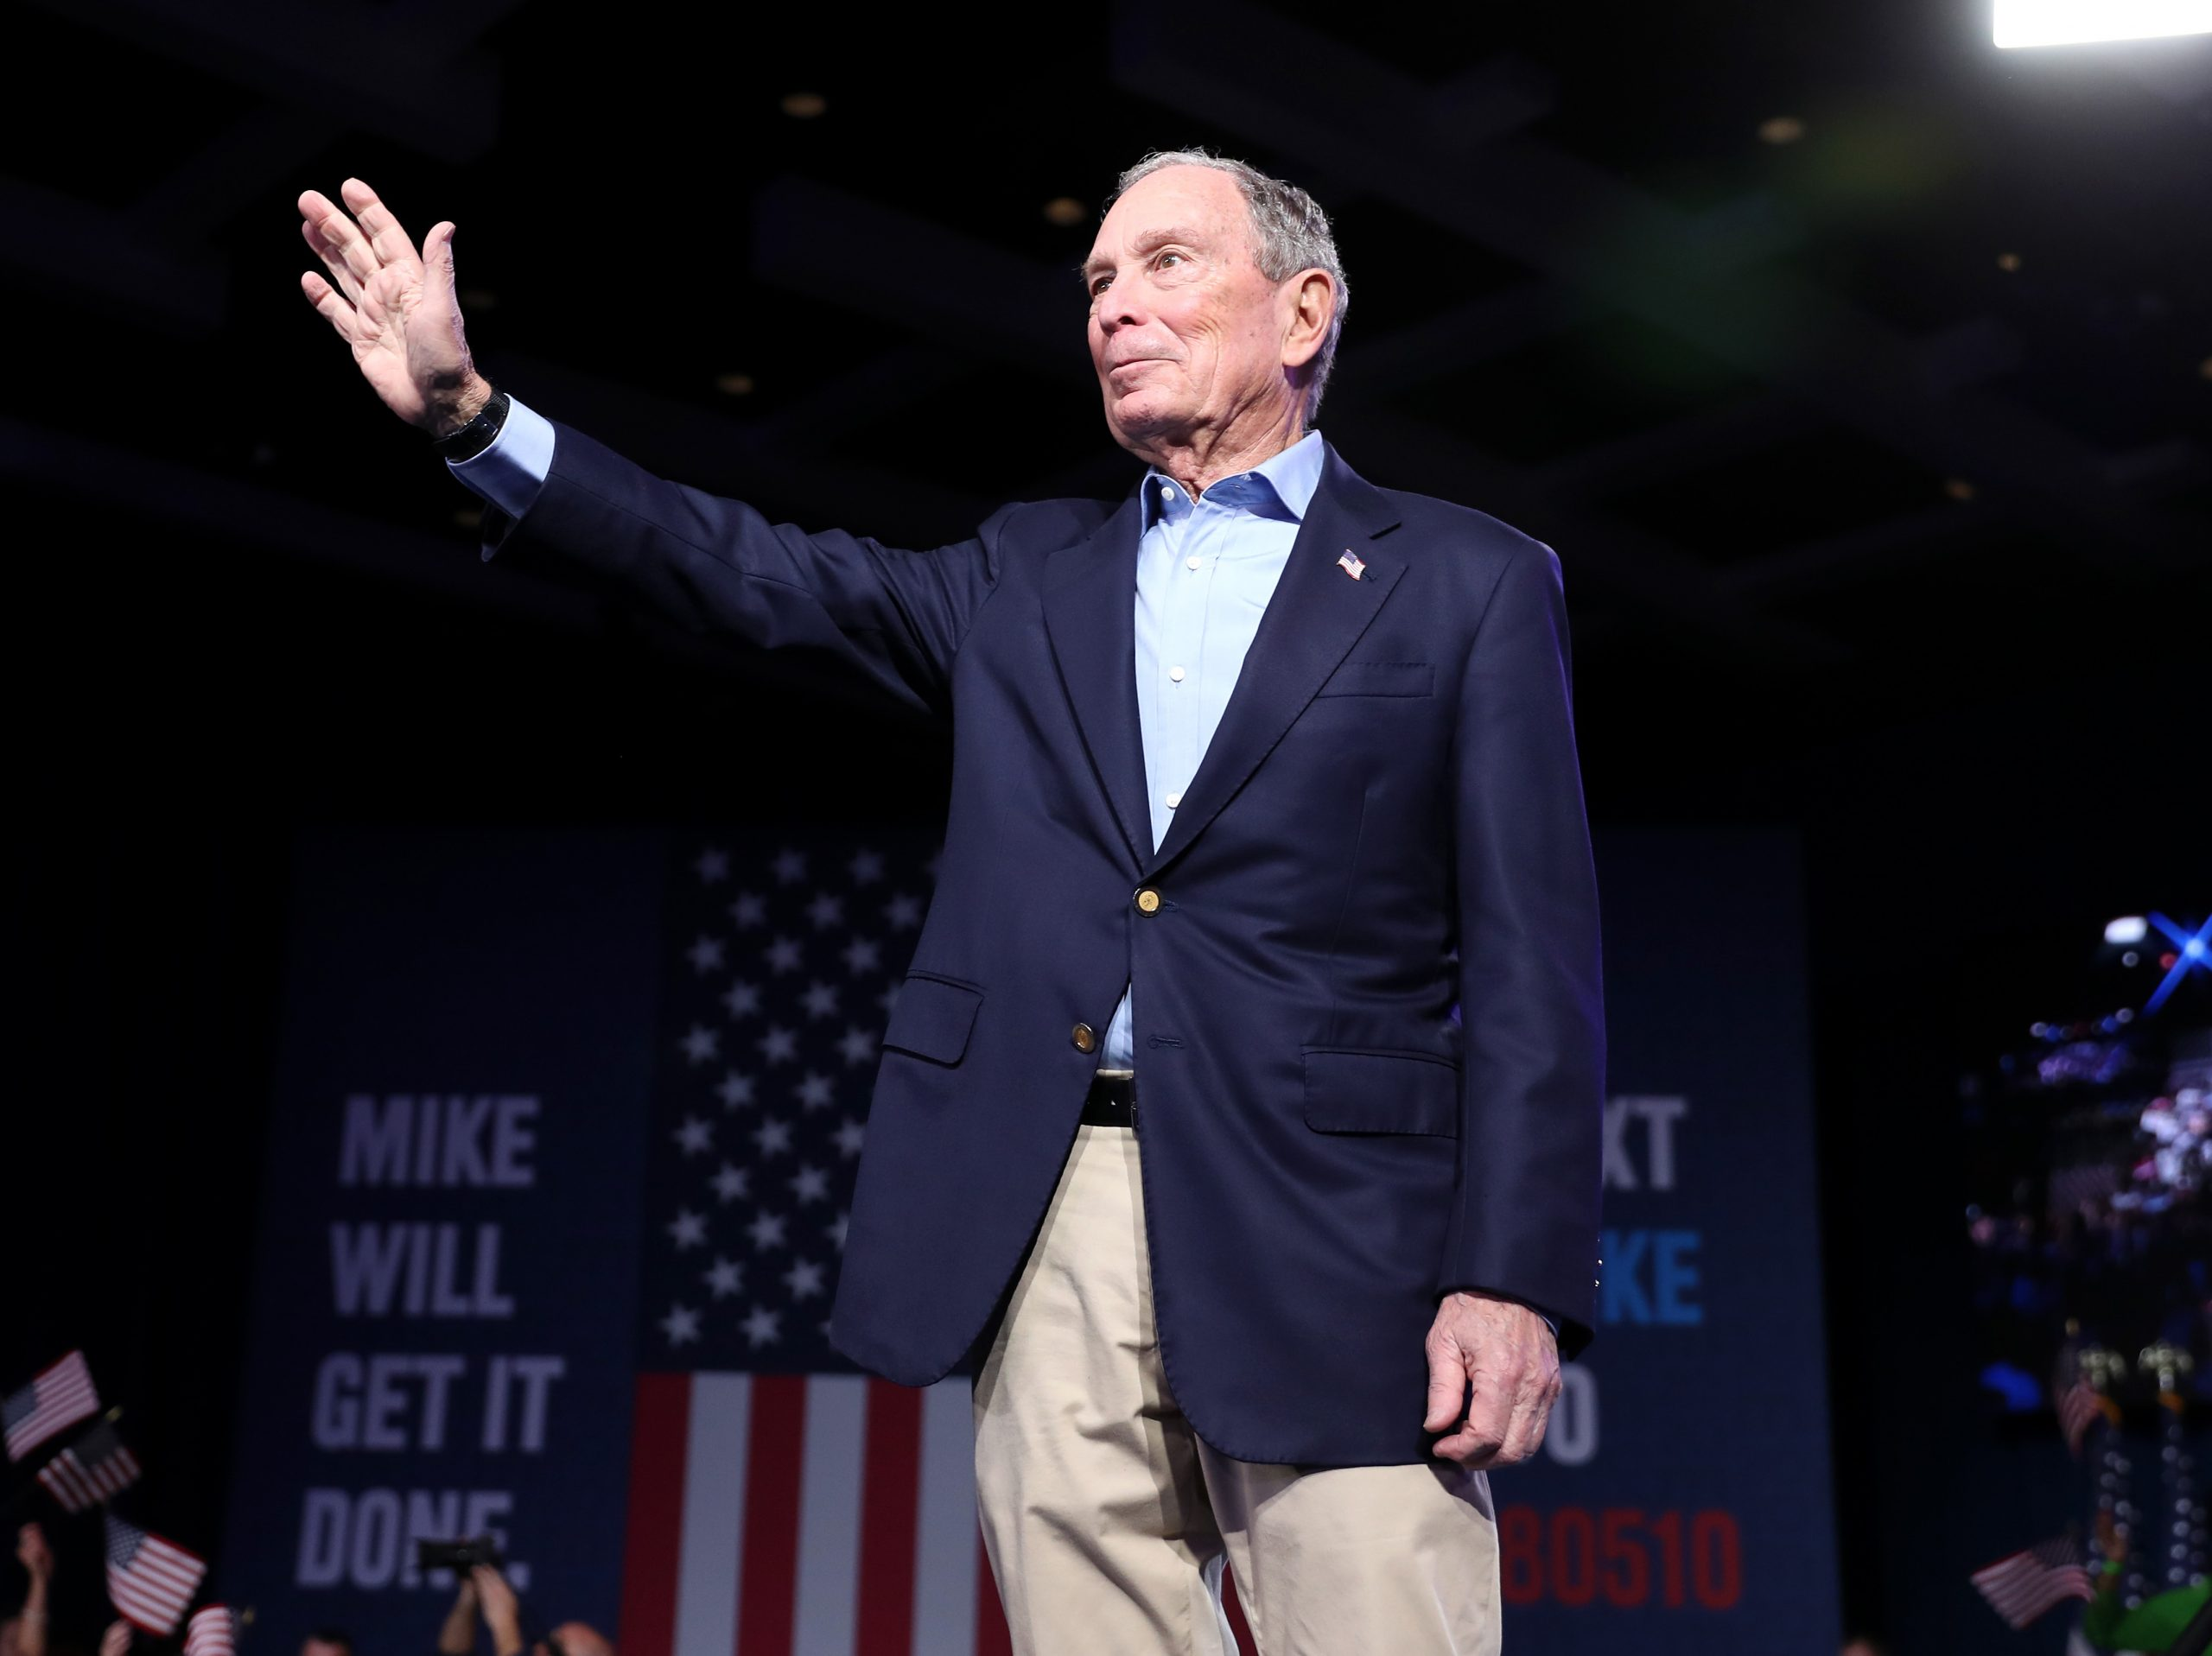 Mike Bloomberg waves to his supporters at his Super Tuesday night event on March 3. Bloomberg dropped out of the Democratic primary race on Wednesday.